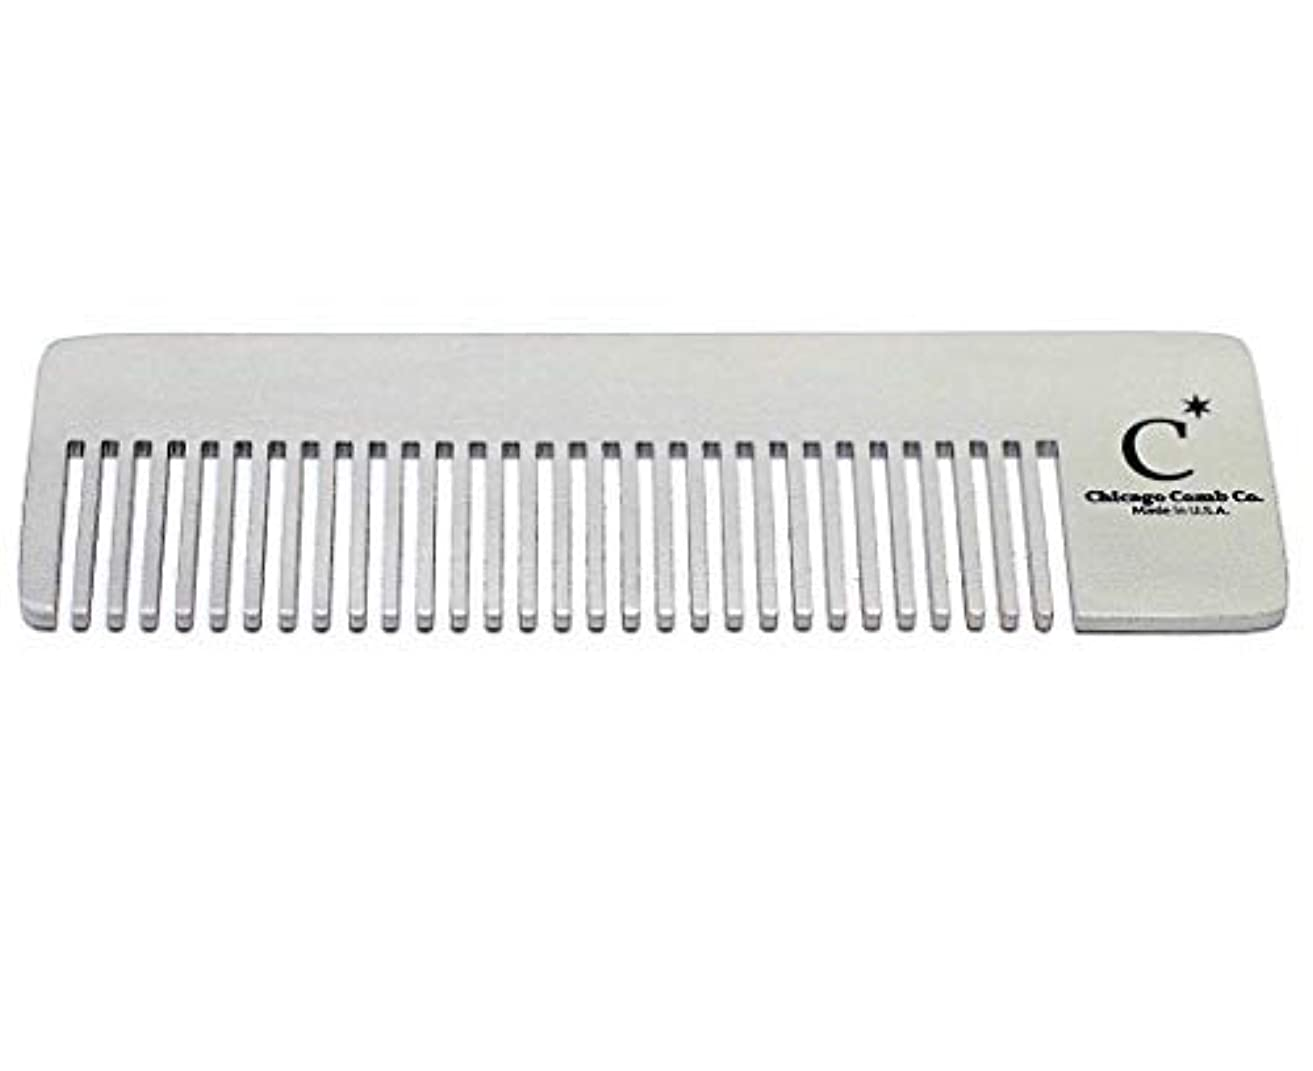 Chicago Comb Model 4 Standard, Made in USA, Stainless Steel, Ultimate Pocket Comb, Beard & Mustache, Medium-Fine...